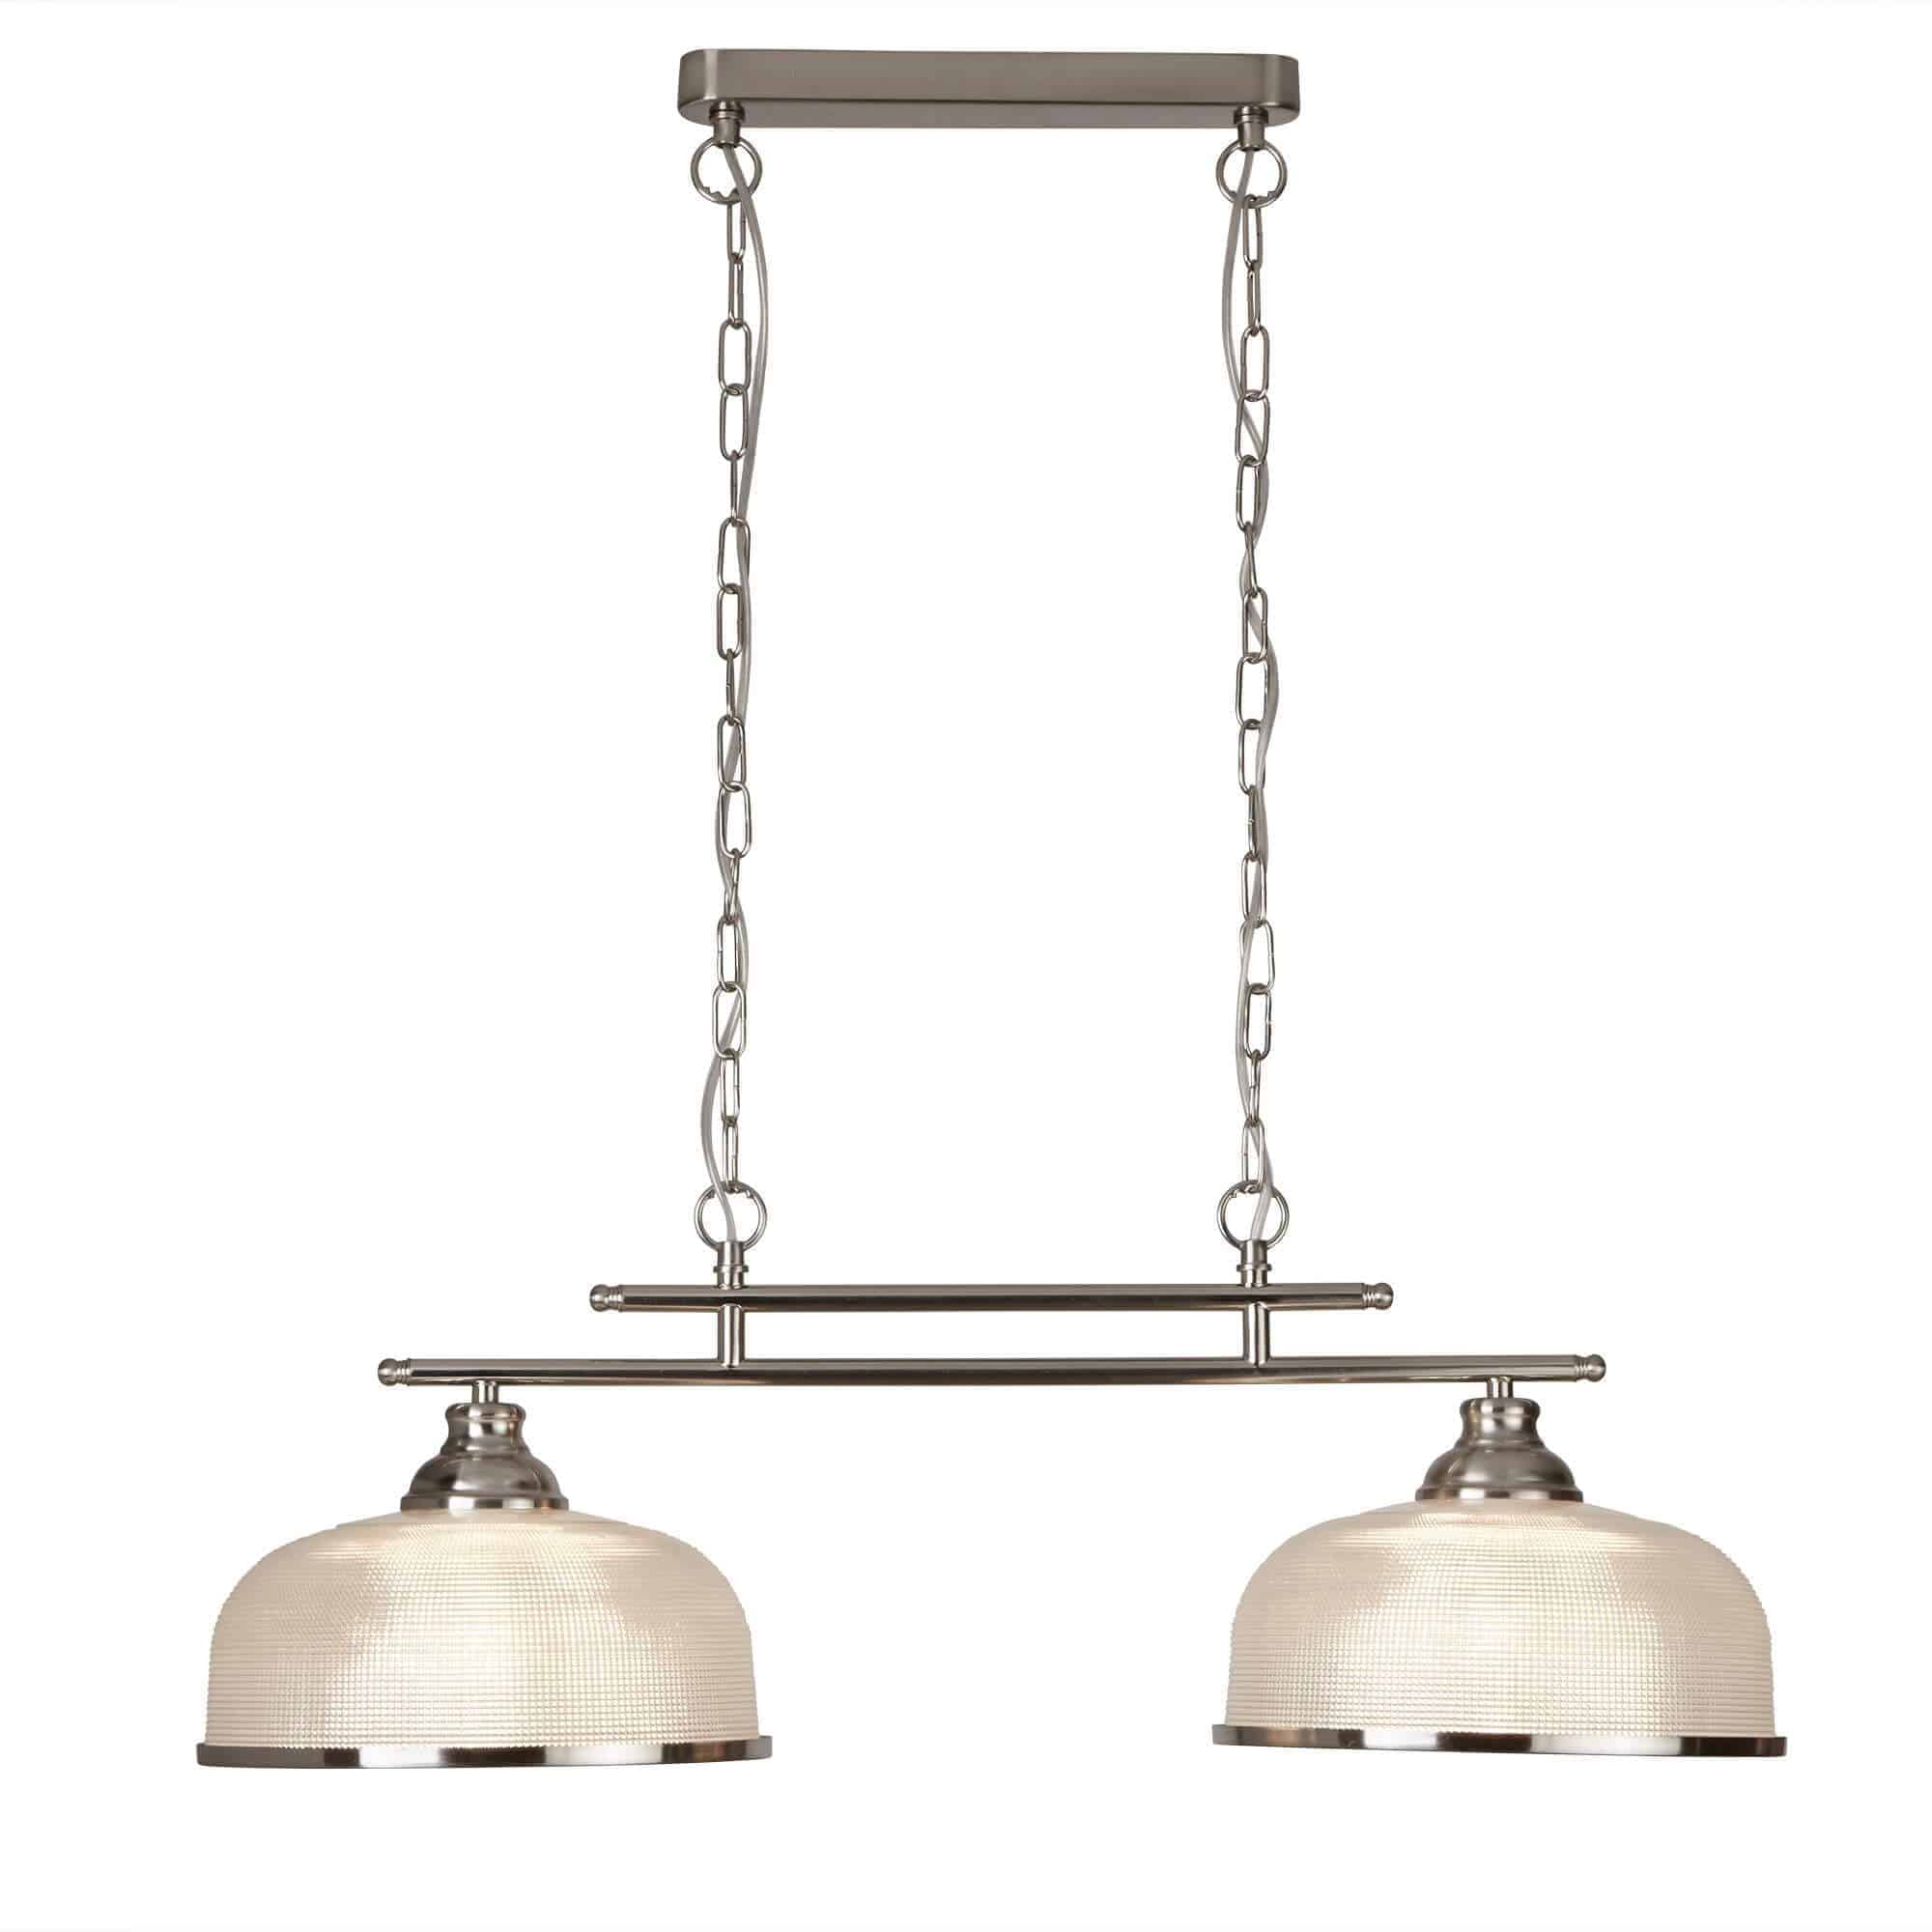 3592-2SS – Searchlight Bistro ii Satin Silver 2 Light Ceiling Bar